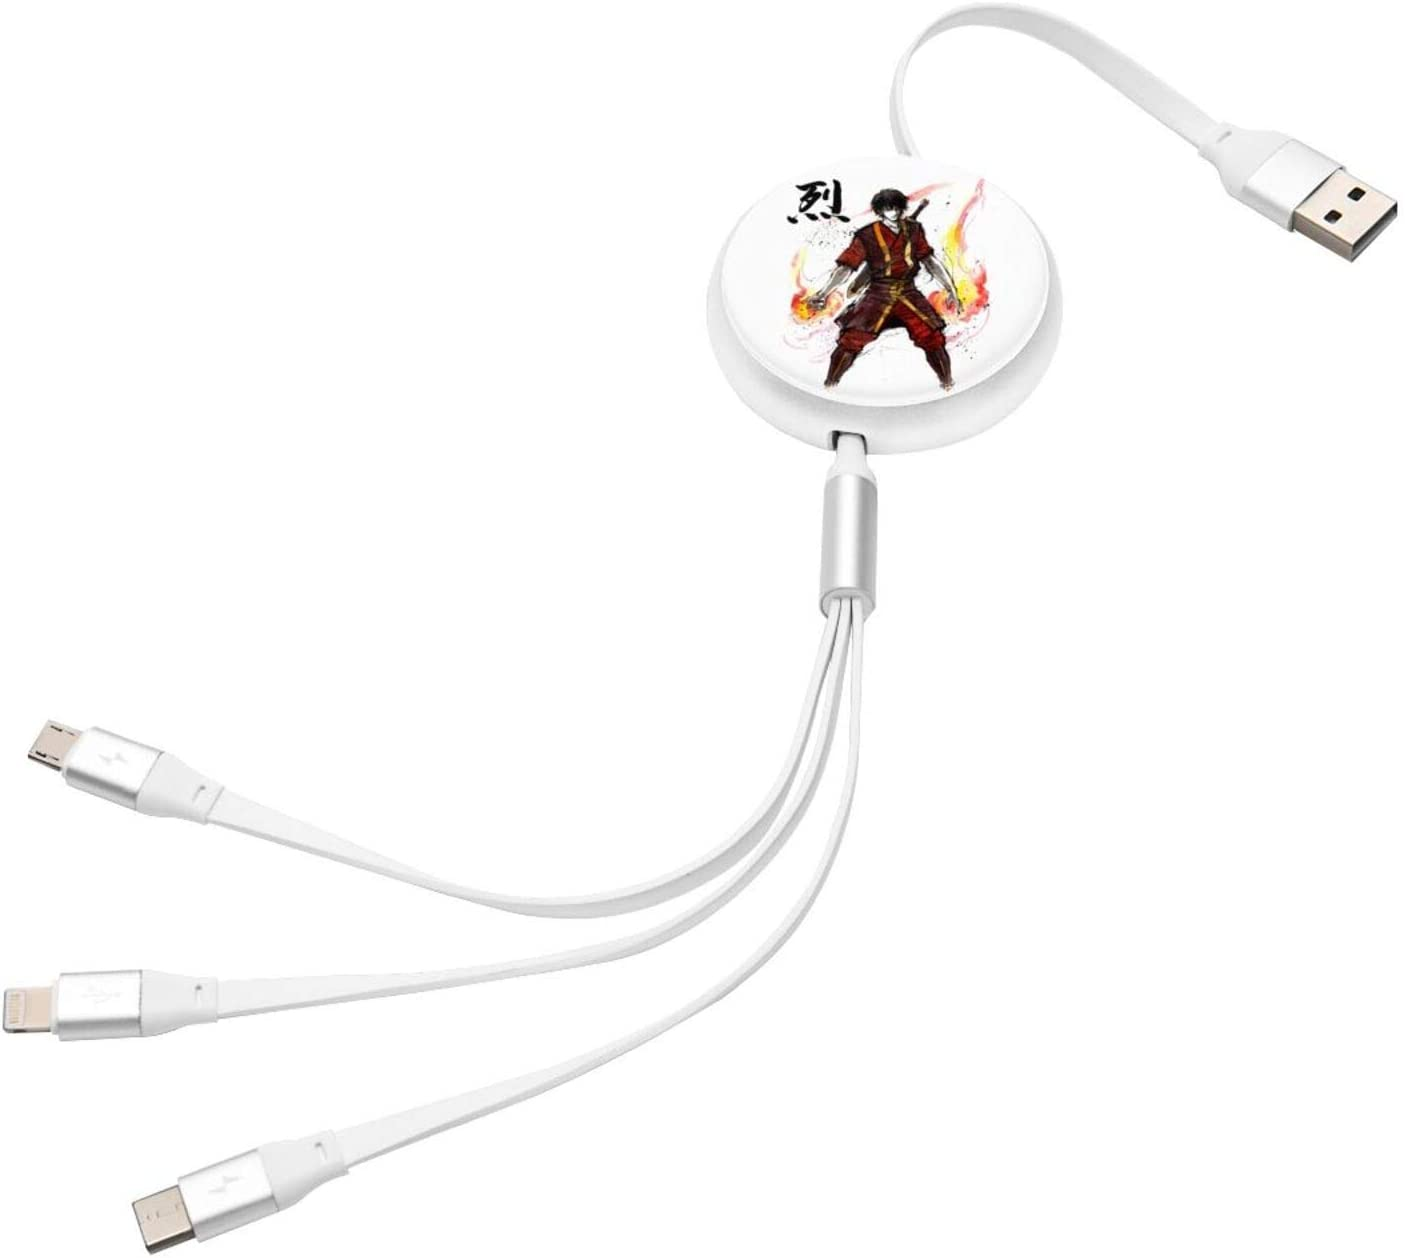 Hero Academia Katsuki Bakugou 3 in 1 Retractable Multiple Charging Cable 3.0a Fast Charger Cord with Phone//Type C//Micro USB Charge Port Adapter Compatible with Cell Phones Tablets and More